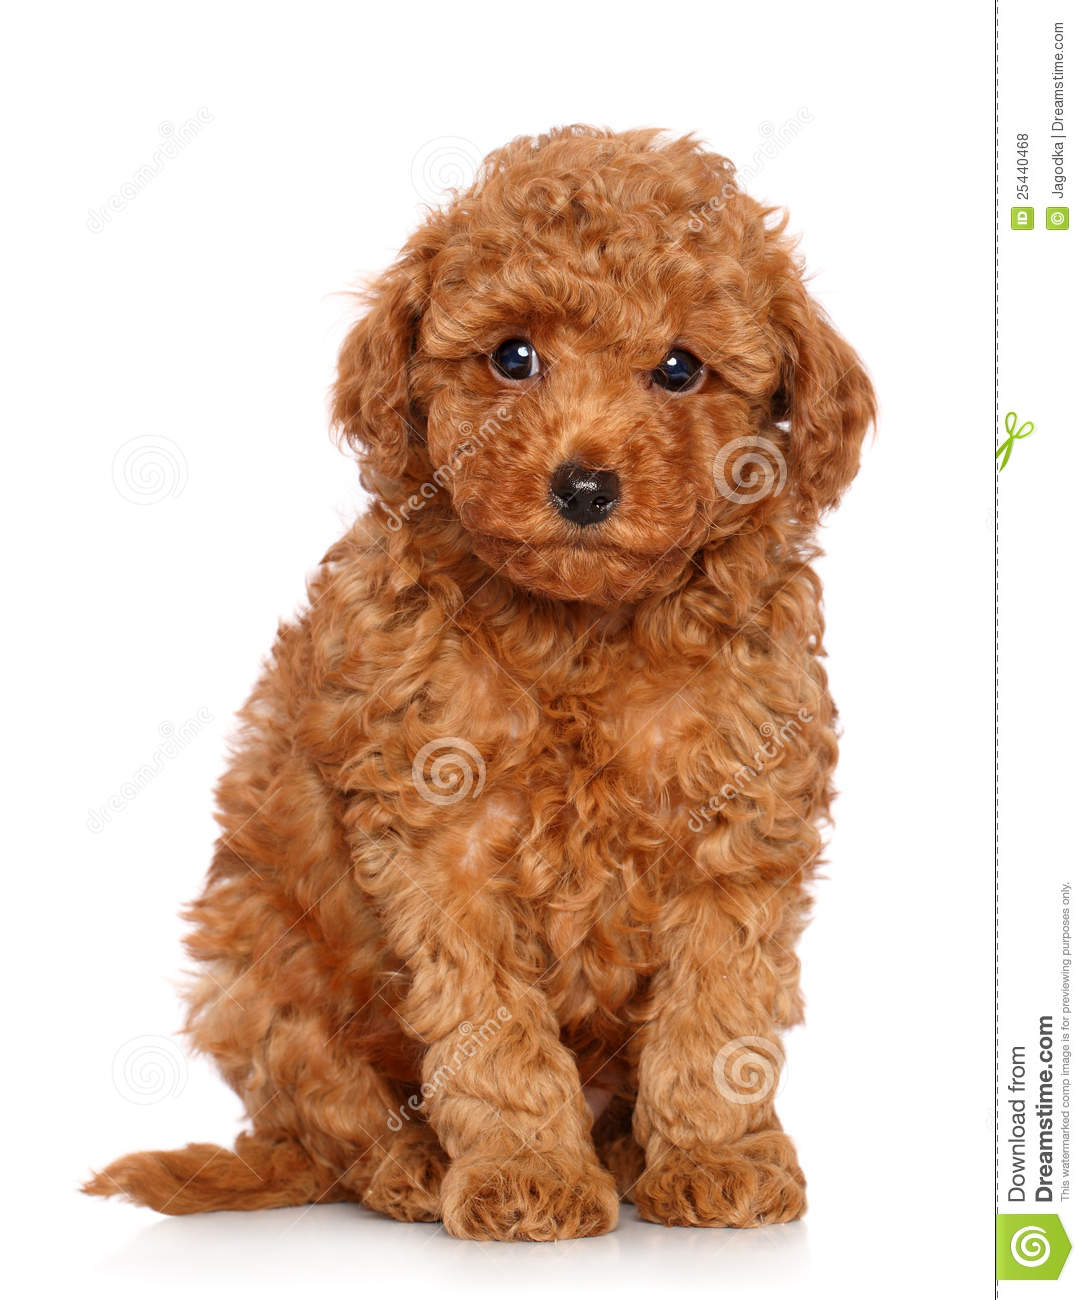 Teacup Chihuahua Puppy 010 furthermore Watch further Watch furthermore Differences Between Poodle Maltese 8278 further Akc Show Quality Ch ion Bloodline Red Male Toy Poodle Puppy 1448. on tiny toy poodle puppies